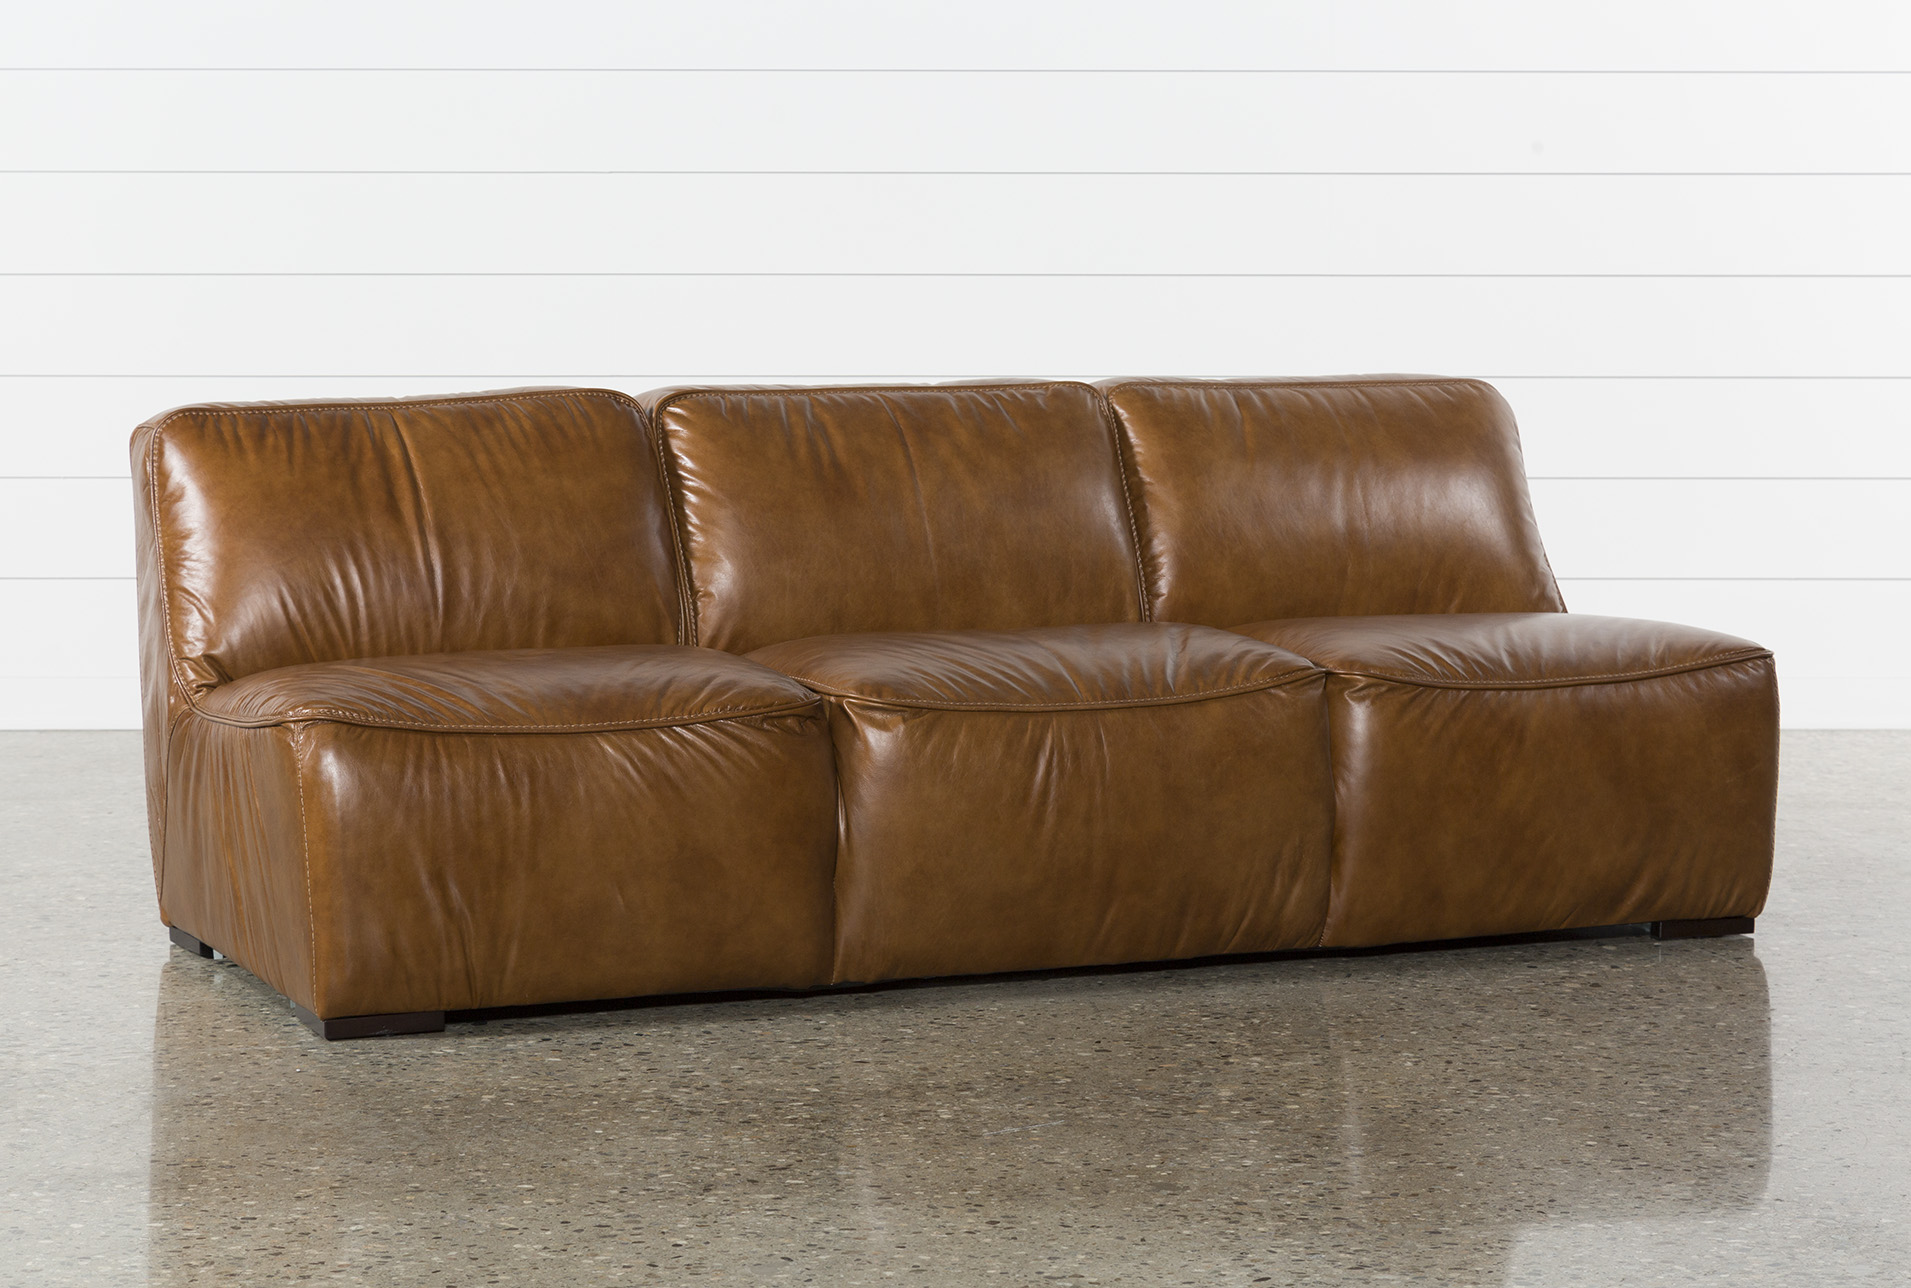 Exceptionnel Burton Leather Armless Sofa (Qty: 1) Has Been Successfully Added To Your  Cart.